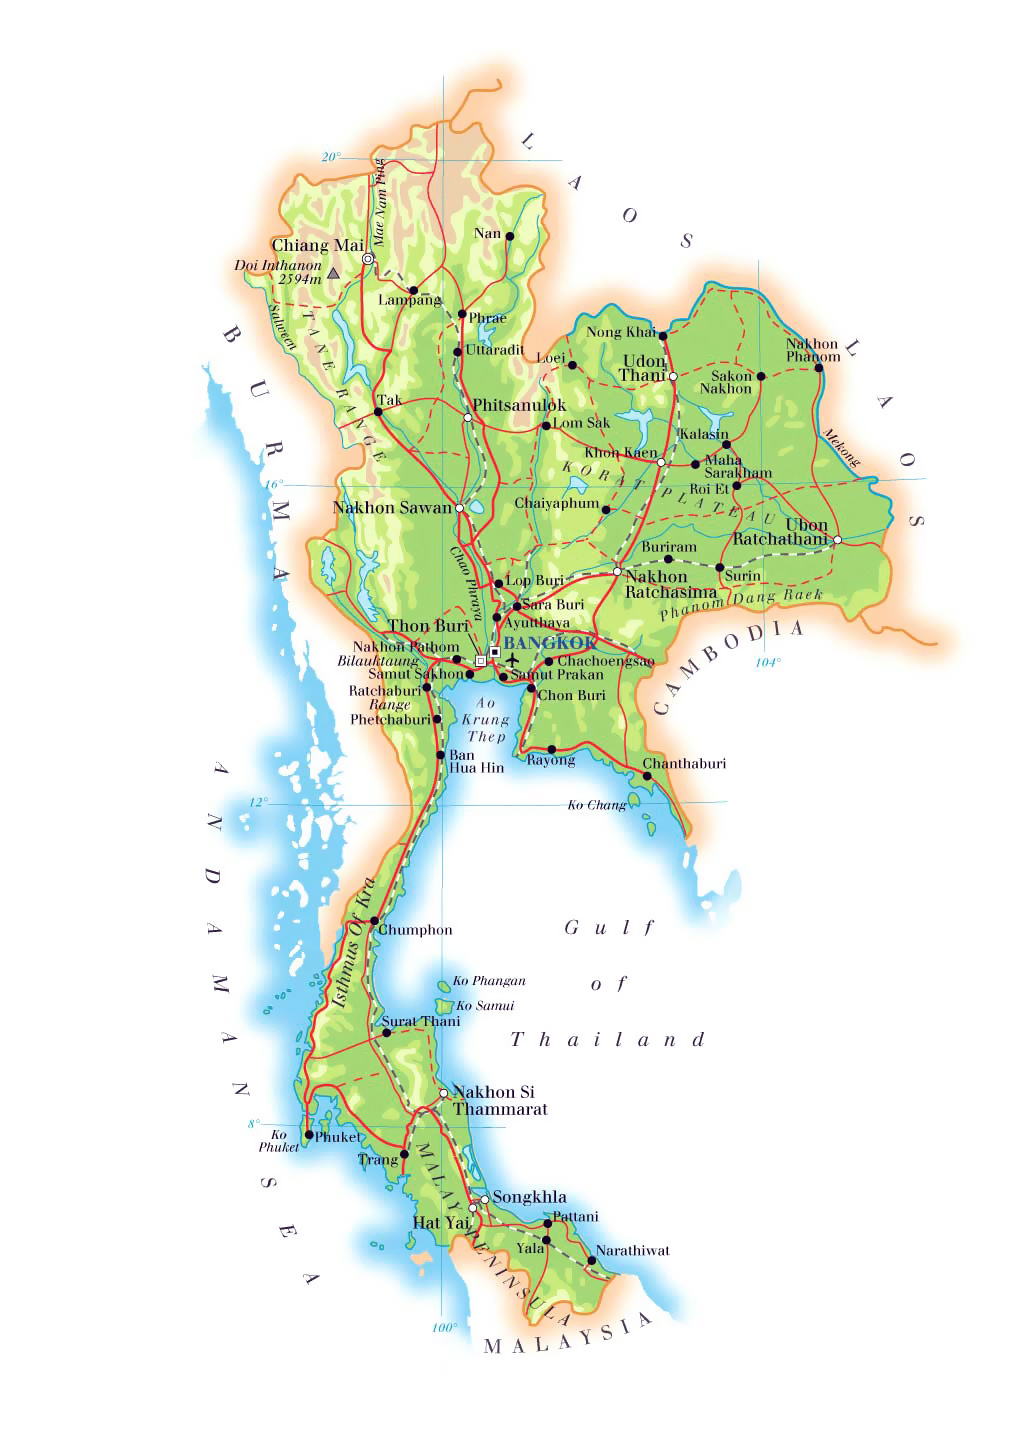 Thailand Topographic Map.Maps Of Thailand Detailed Map Of Thailand In English Tourist